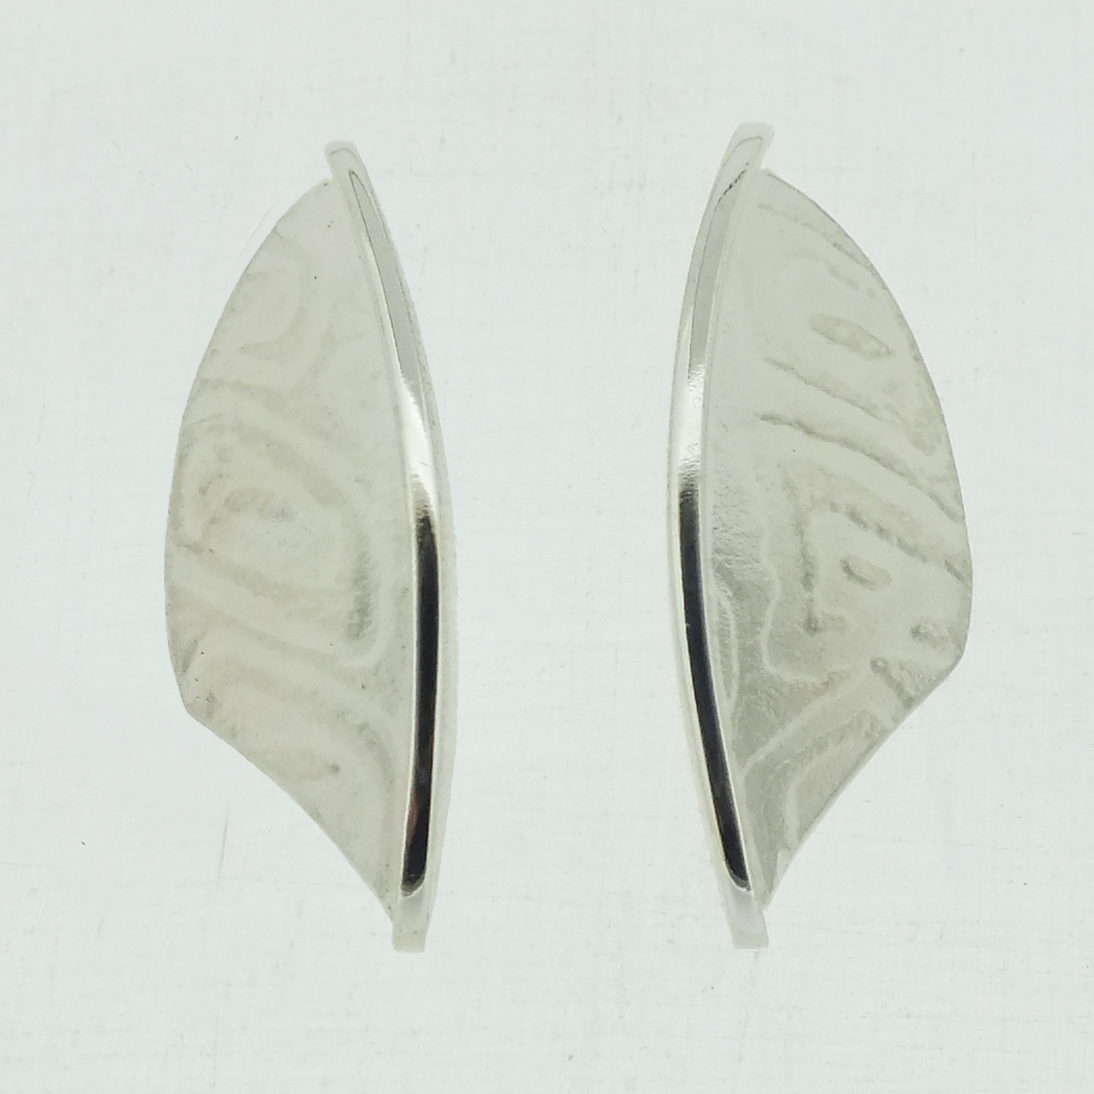 Small Leaf textured silver stud earrings with polished bar